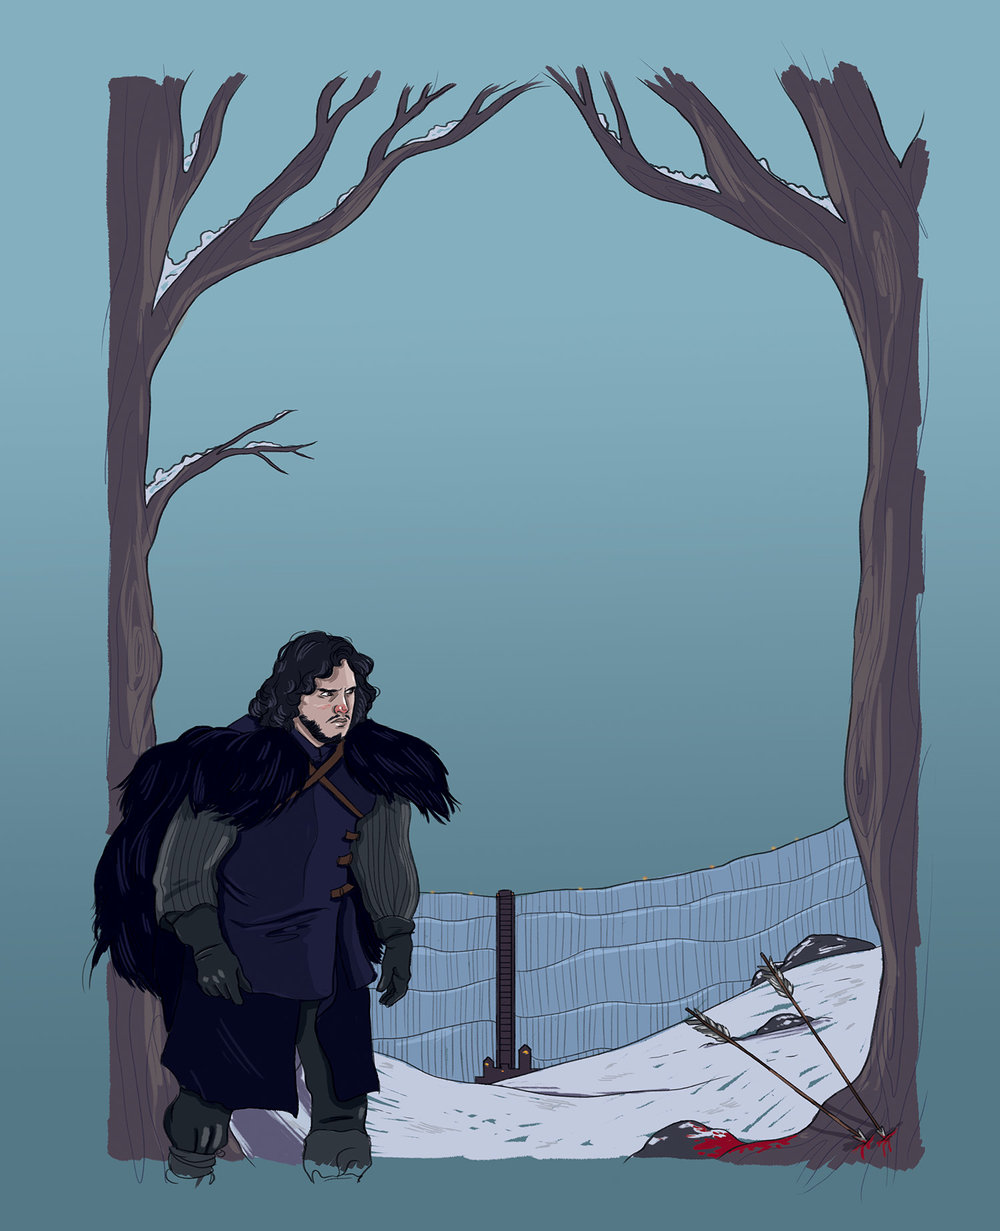 I actually had a column for a short time in the Capilano Courier, covering geek news. This was a full-page illustration that featured Jon Snow from Game of Thrones.